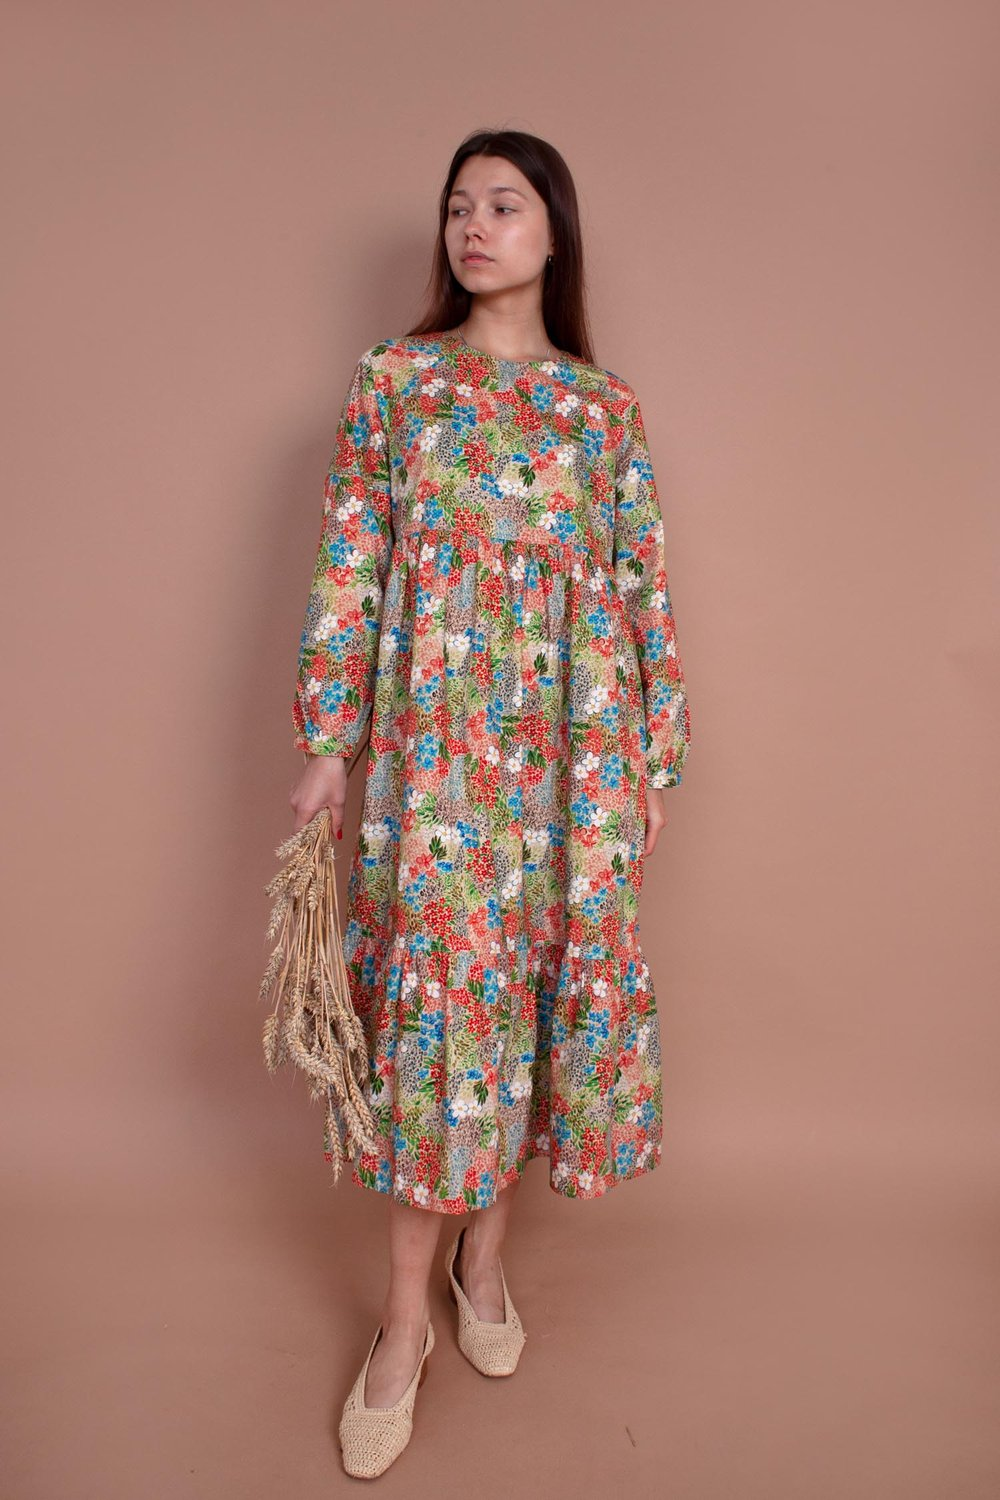 MEADOWS Acacia Dress in Winter Meadow